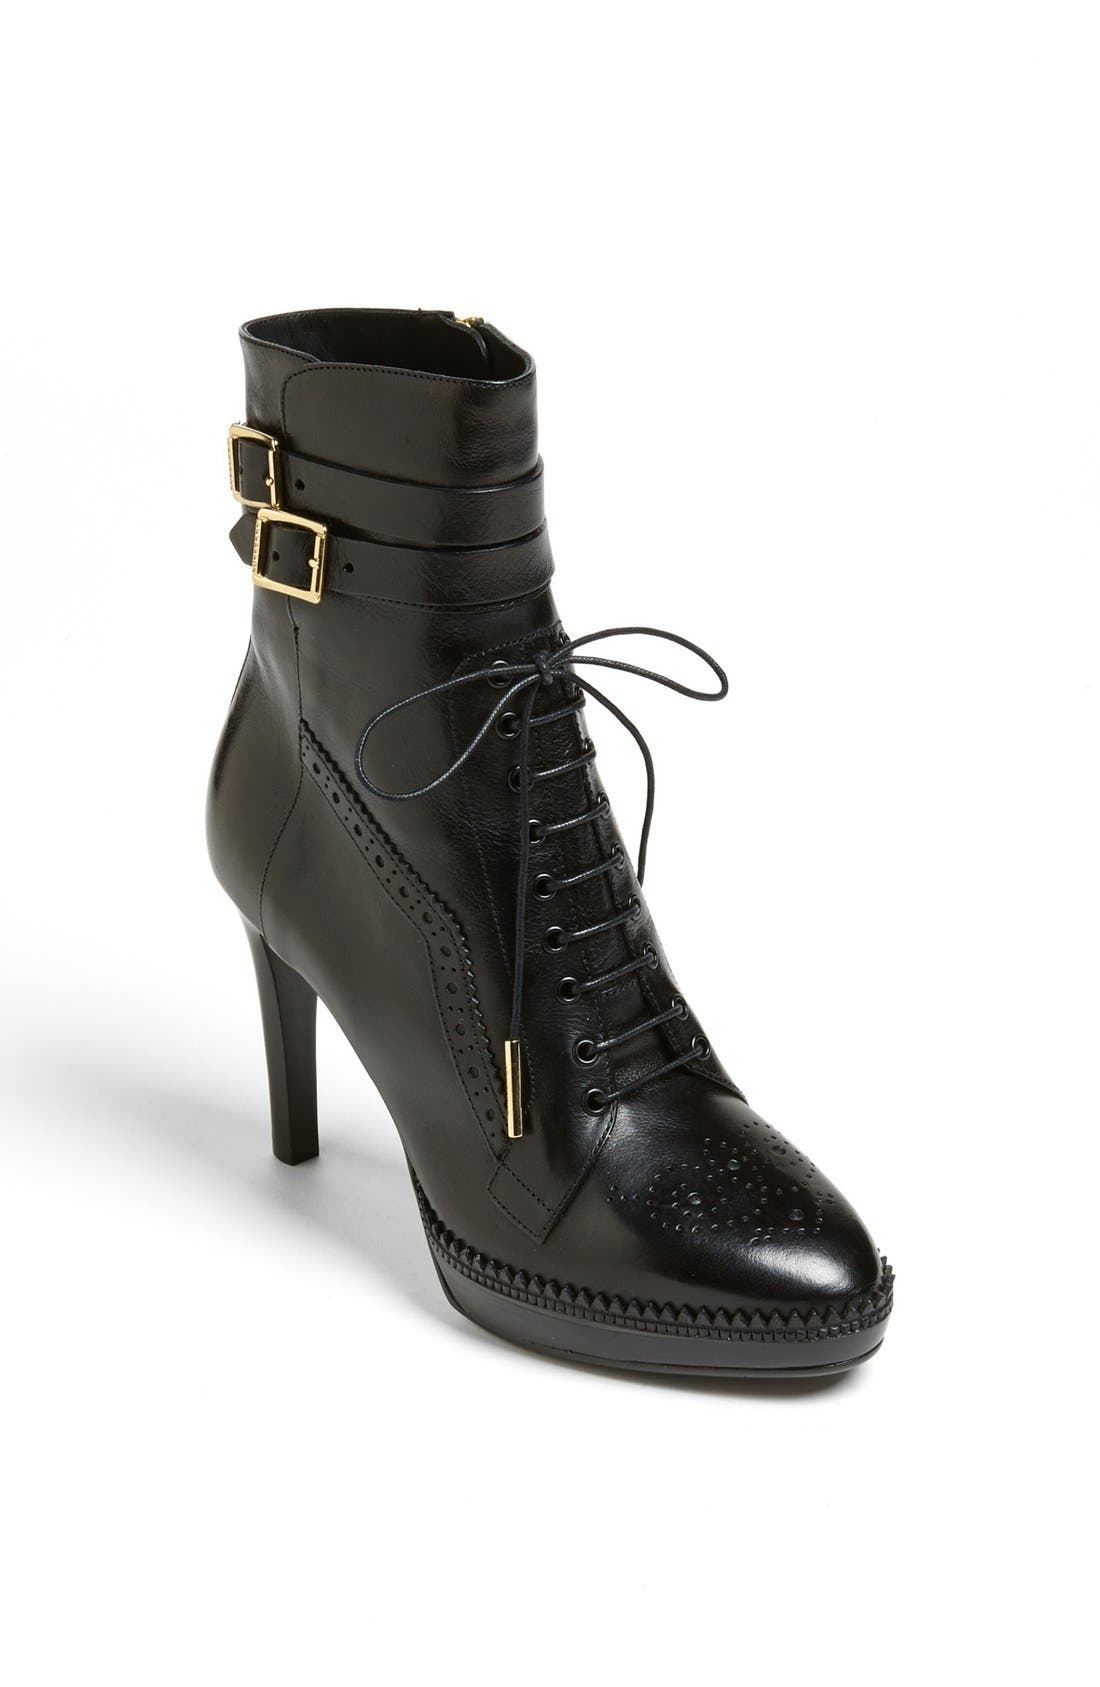 Alternate Image 1 Selected - Burberry 'Manners' Bootie